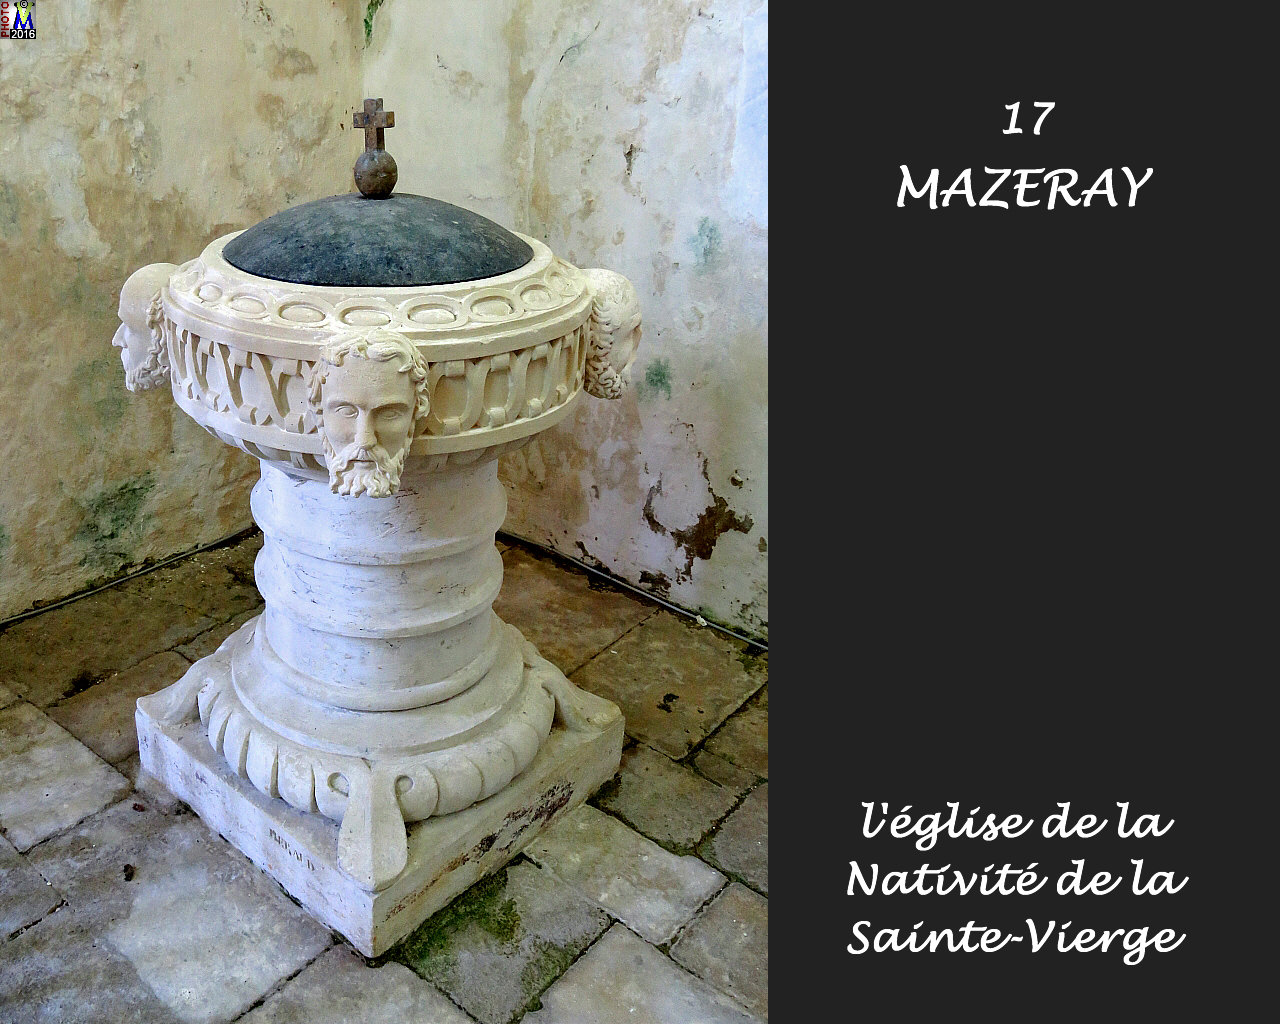 17MAZERAY_eglise_1150.jpg